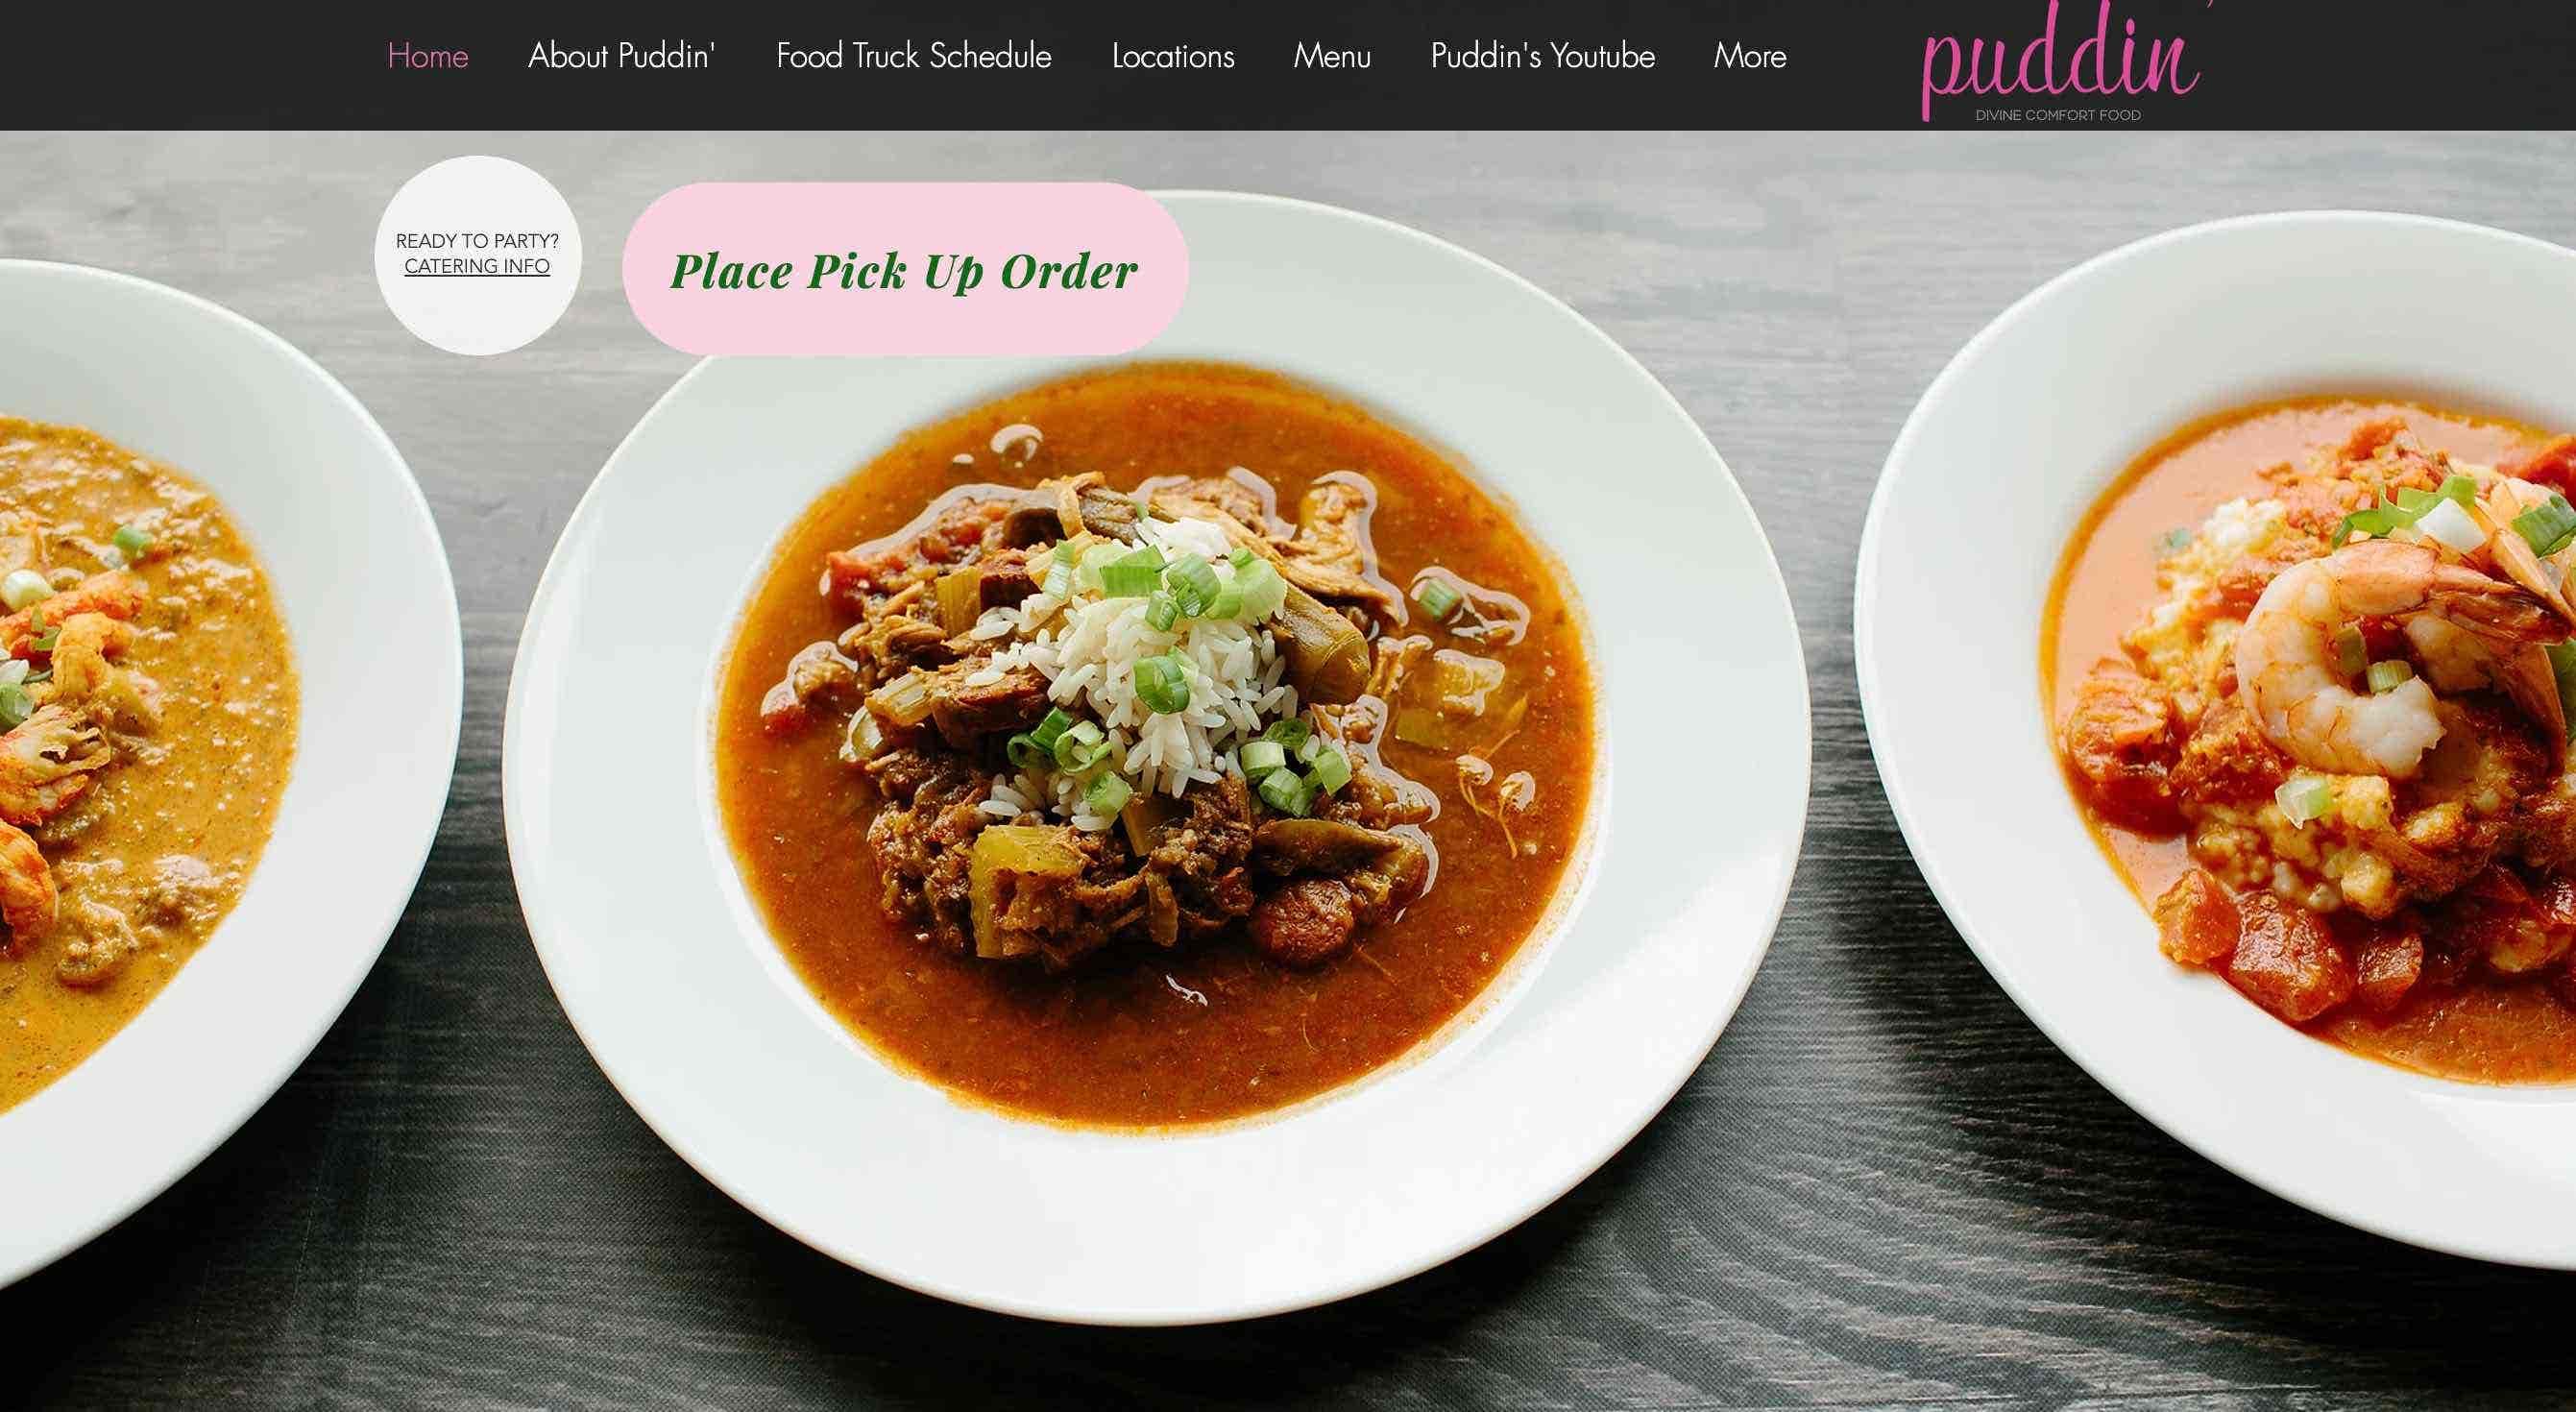 puddin website design wix